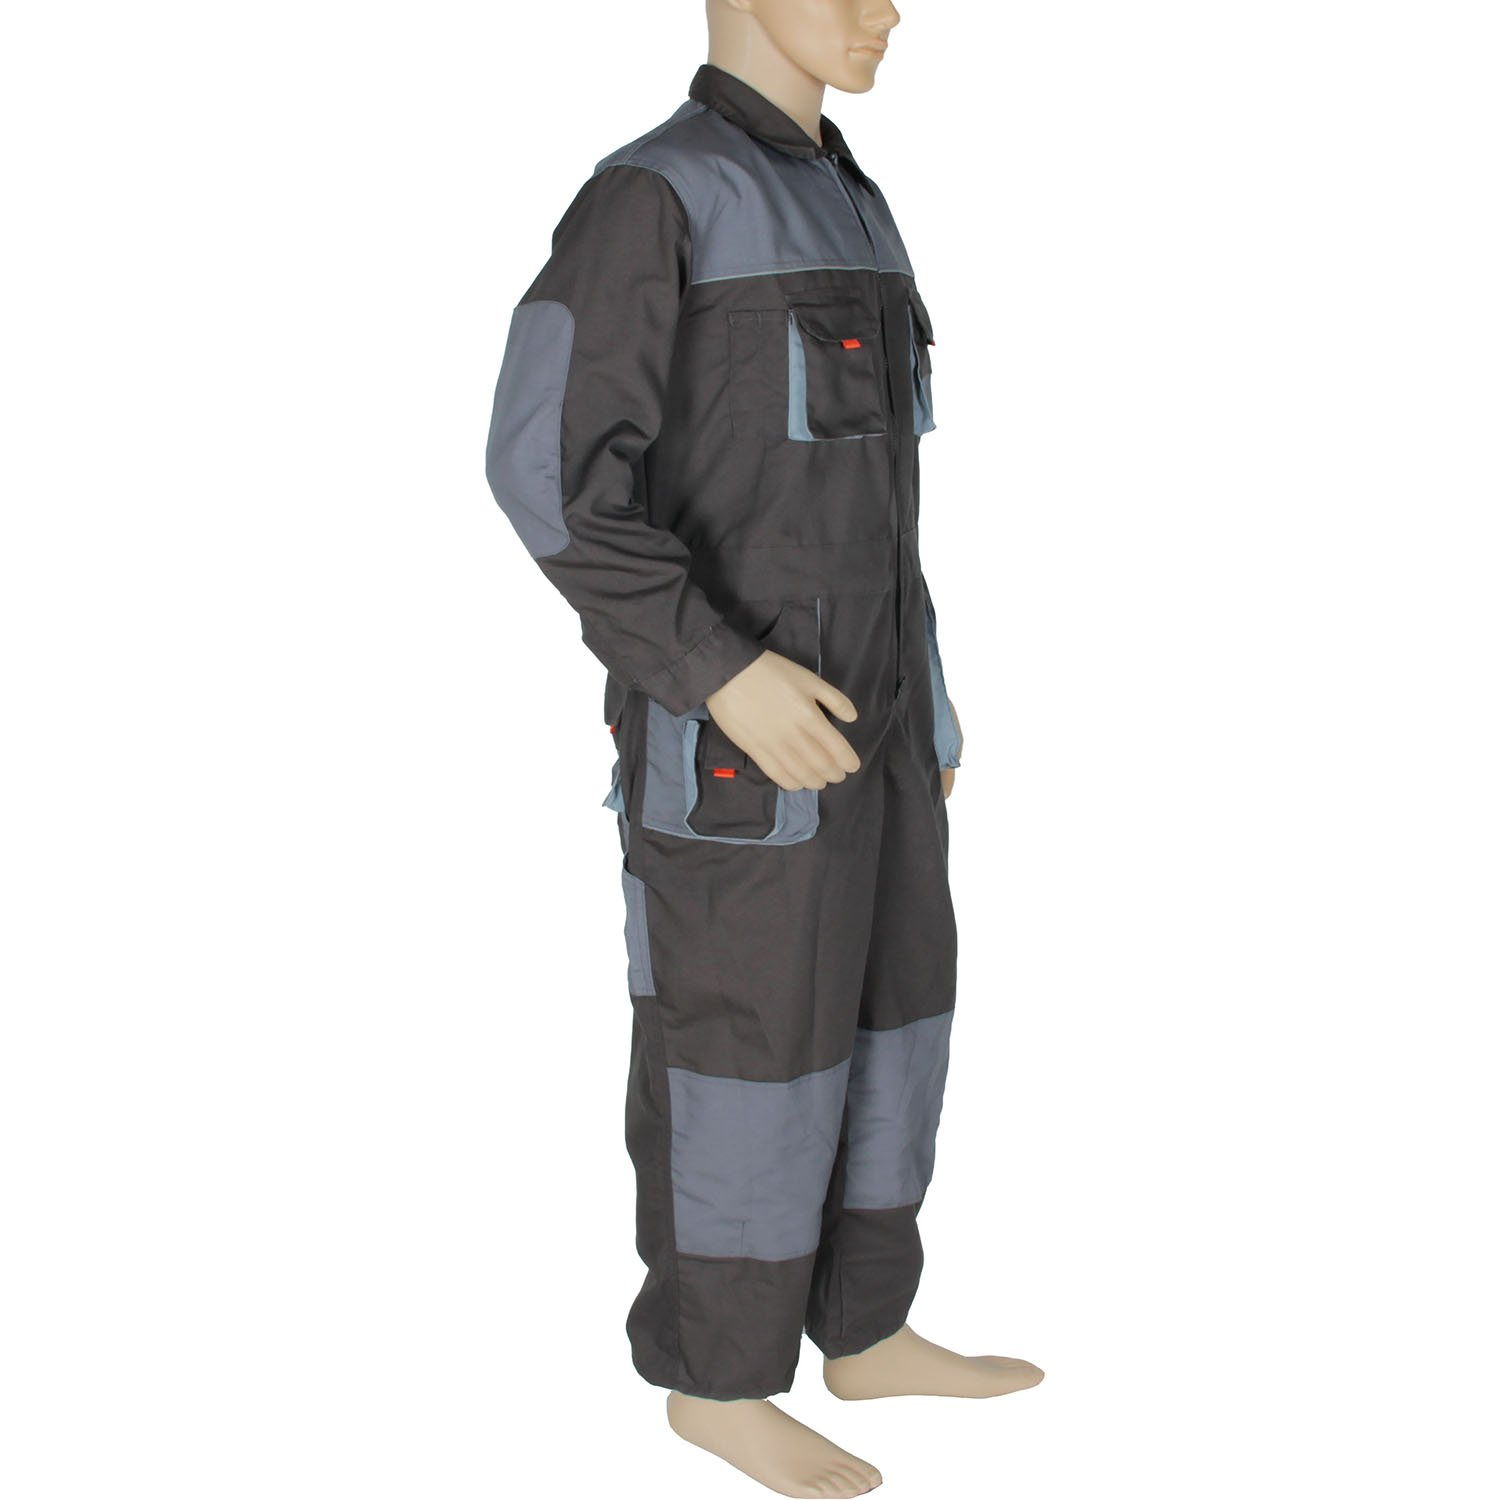 Aolamegs Men's and Women's Long Sleeve Coveralls for Worker Repairman Machine Auto Repair Electric Welding Work Clothing US S by Aolamegs (Image #3)